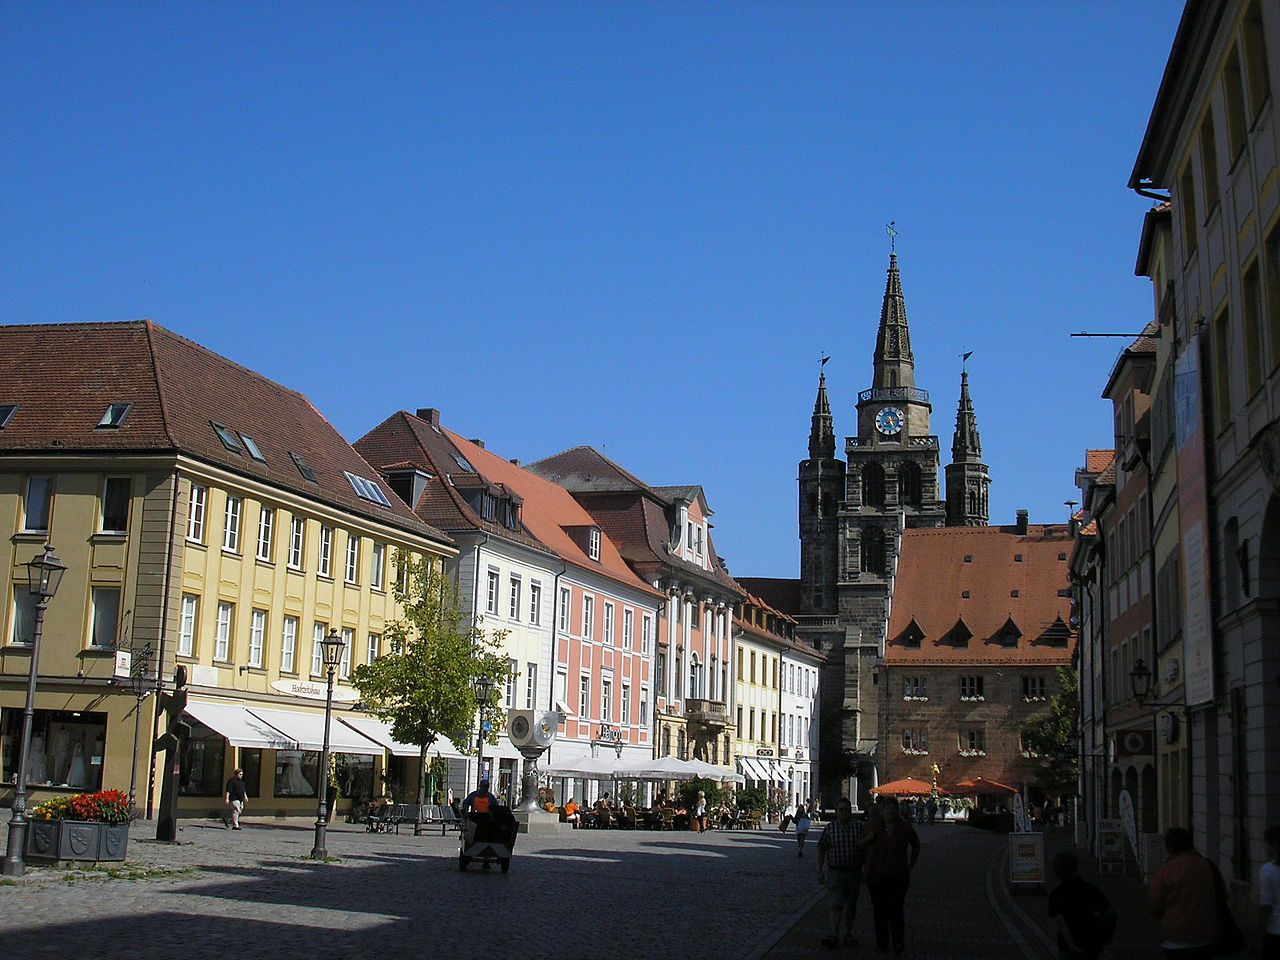 Martin-Luther plein in Ansbach.